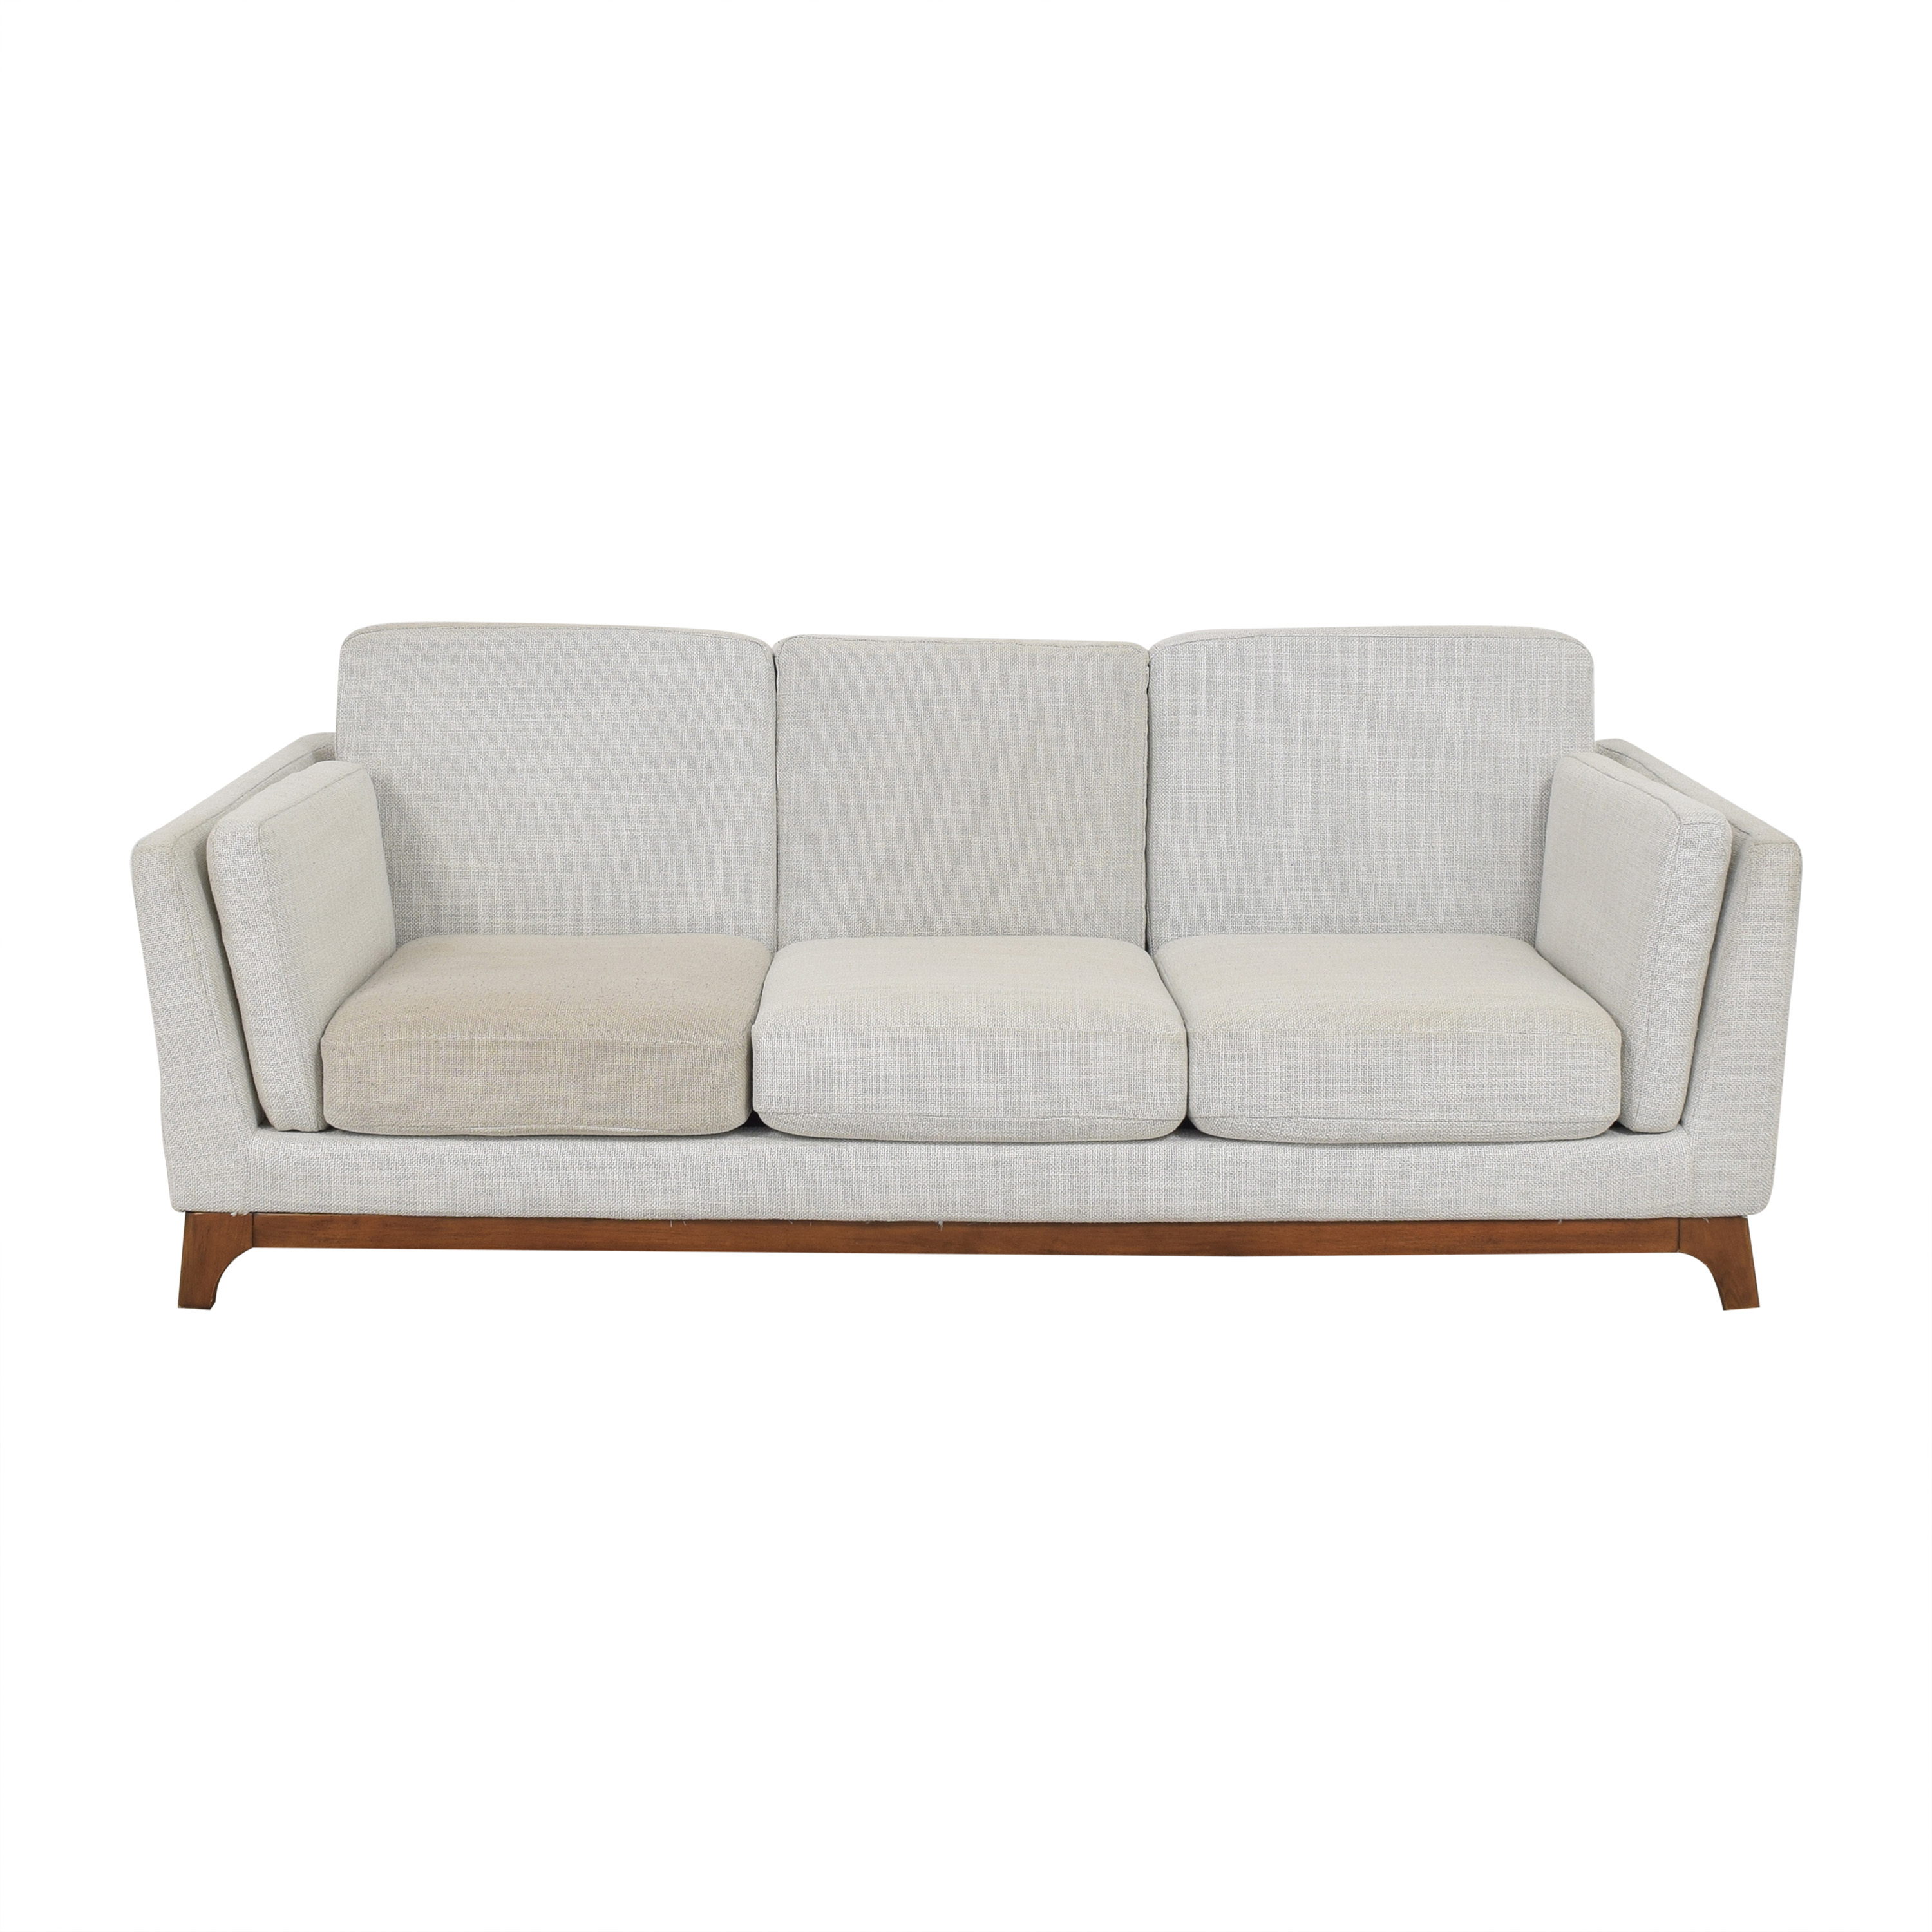 Article Article Ceni Sofa ct